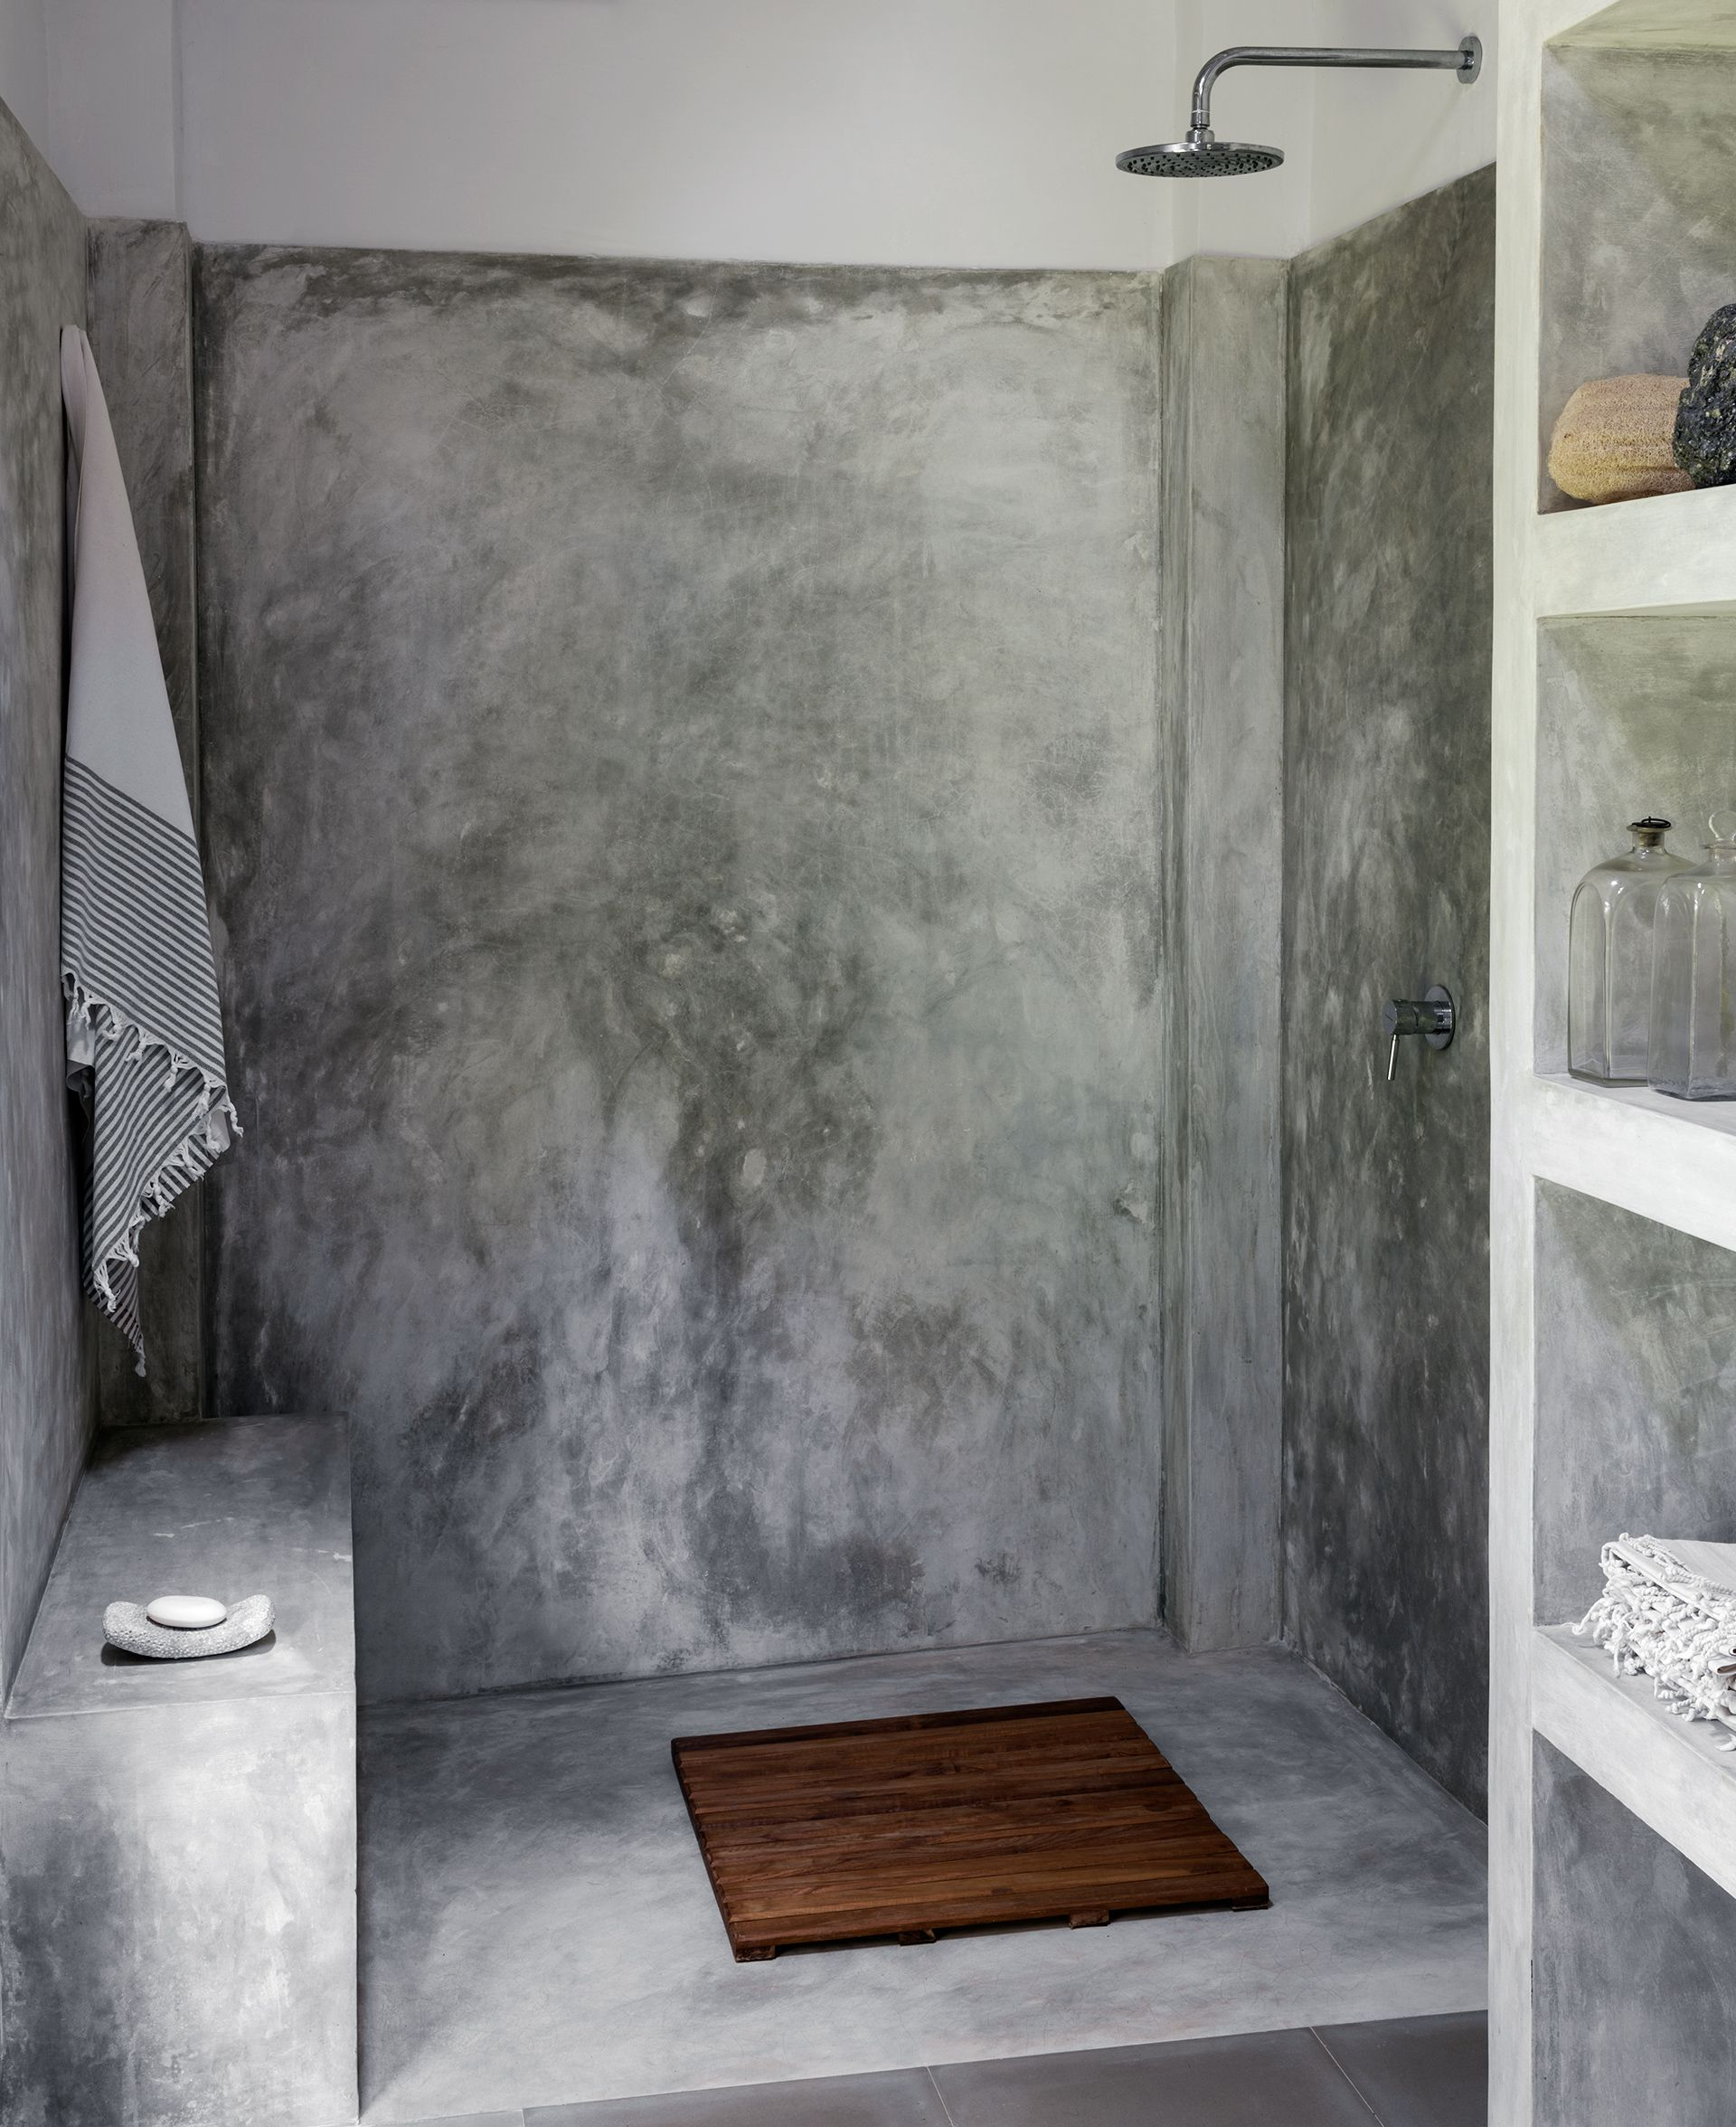 Sea Change Expat House Sri Lanka Concrete Bathroom Polished